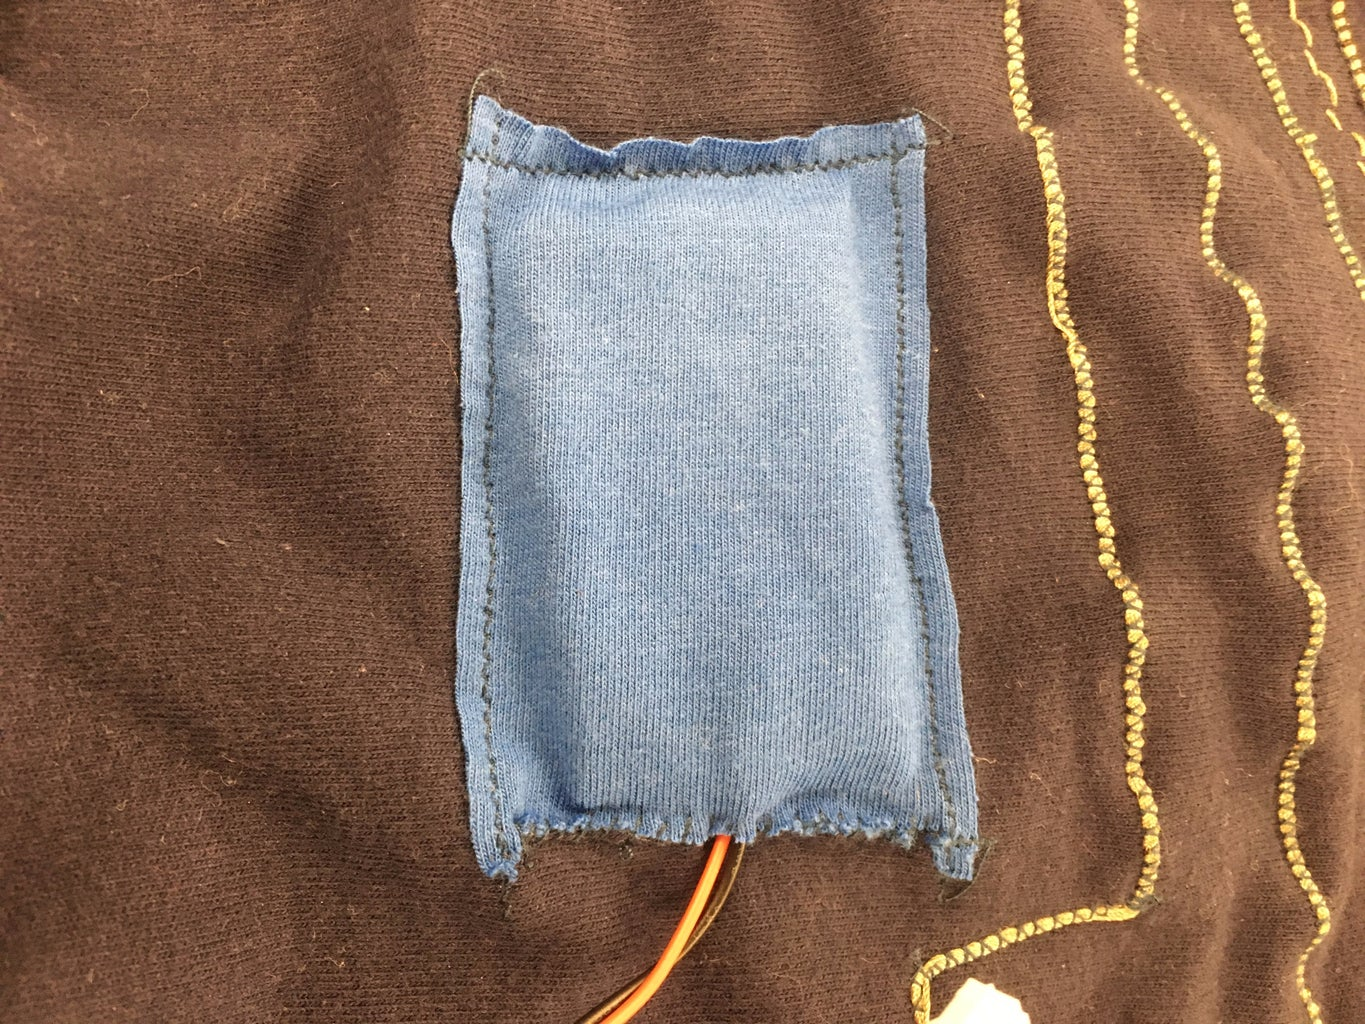 Sew on the Battery Pocket